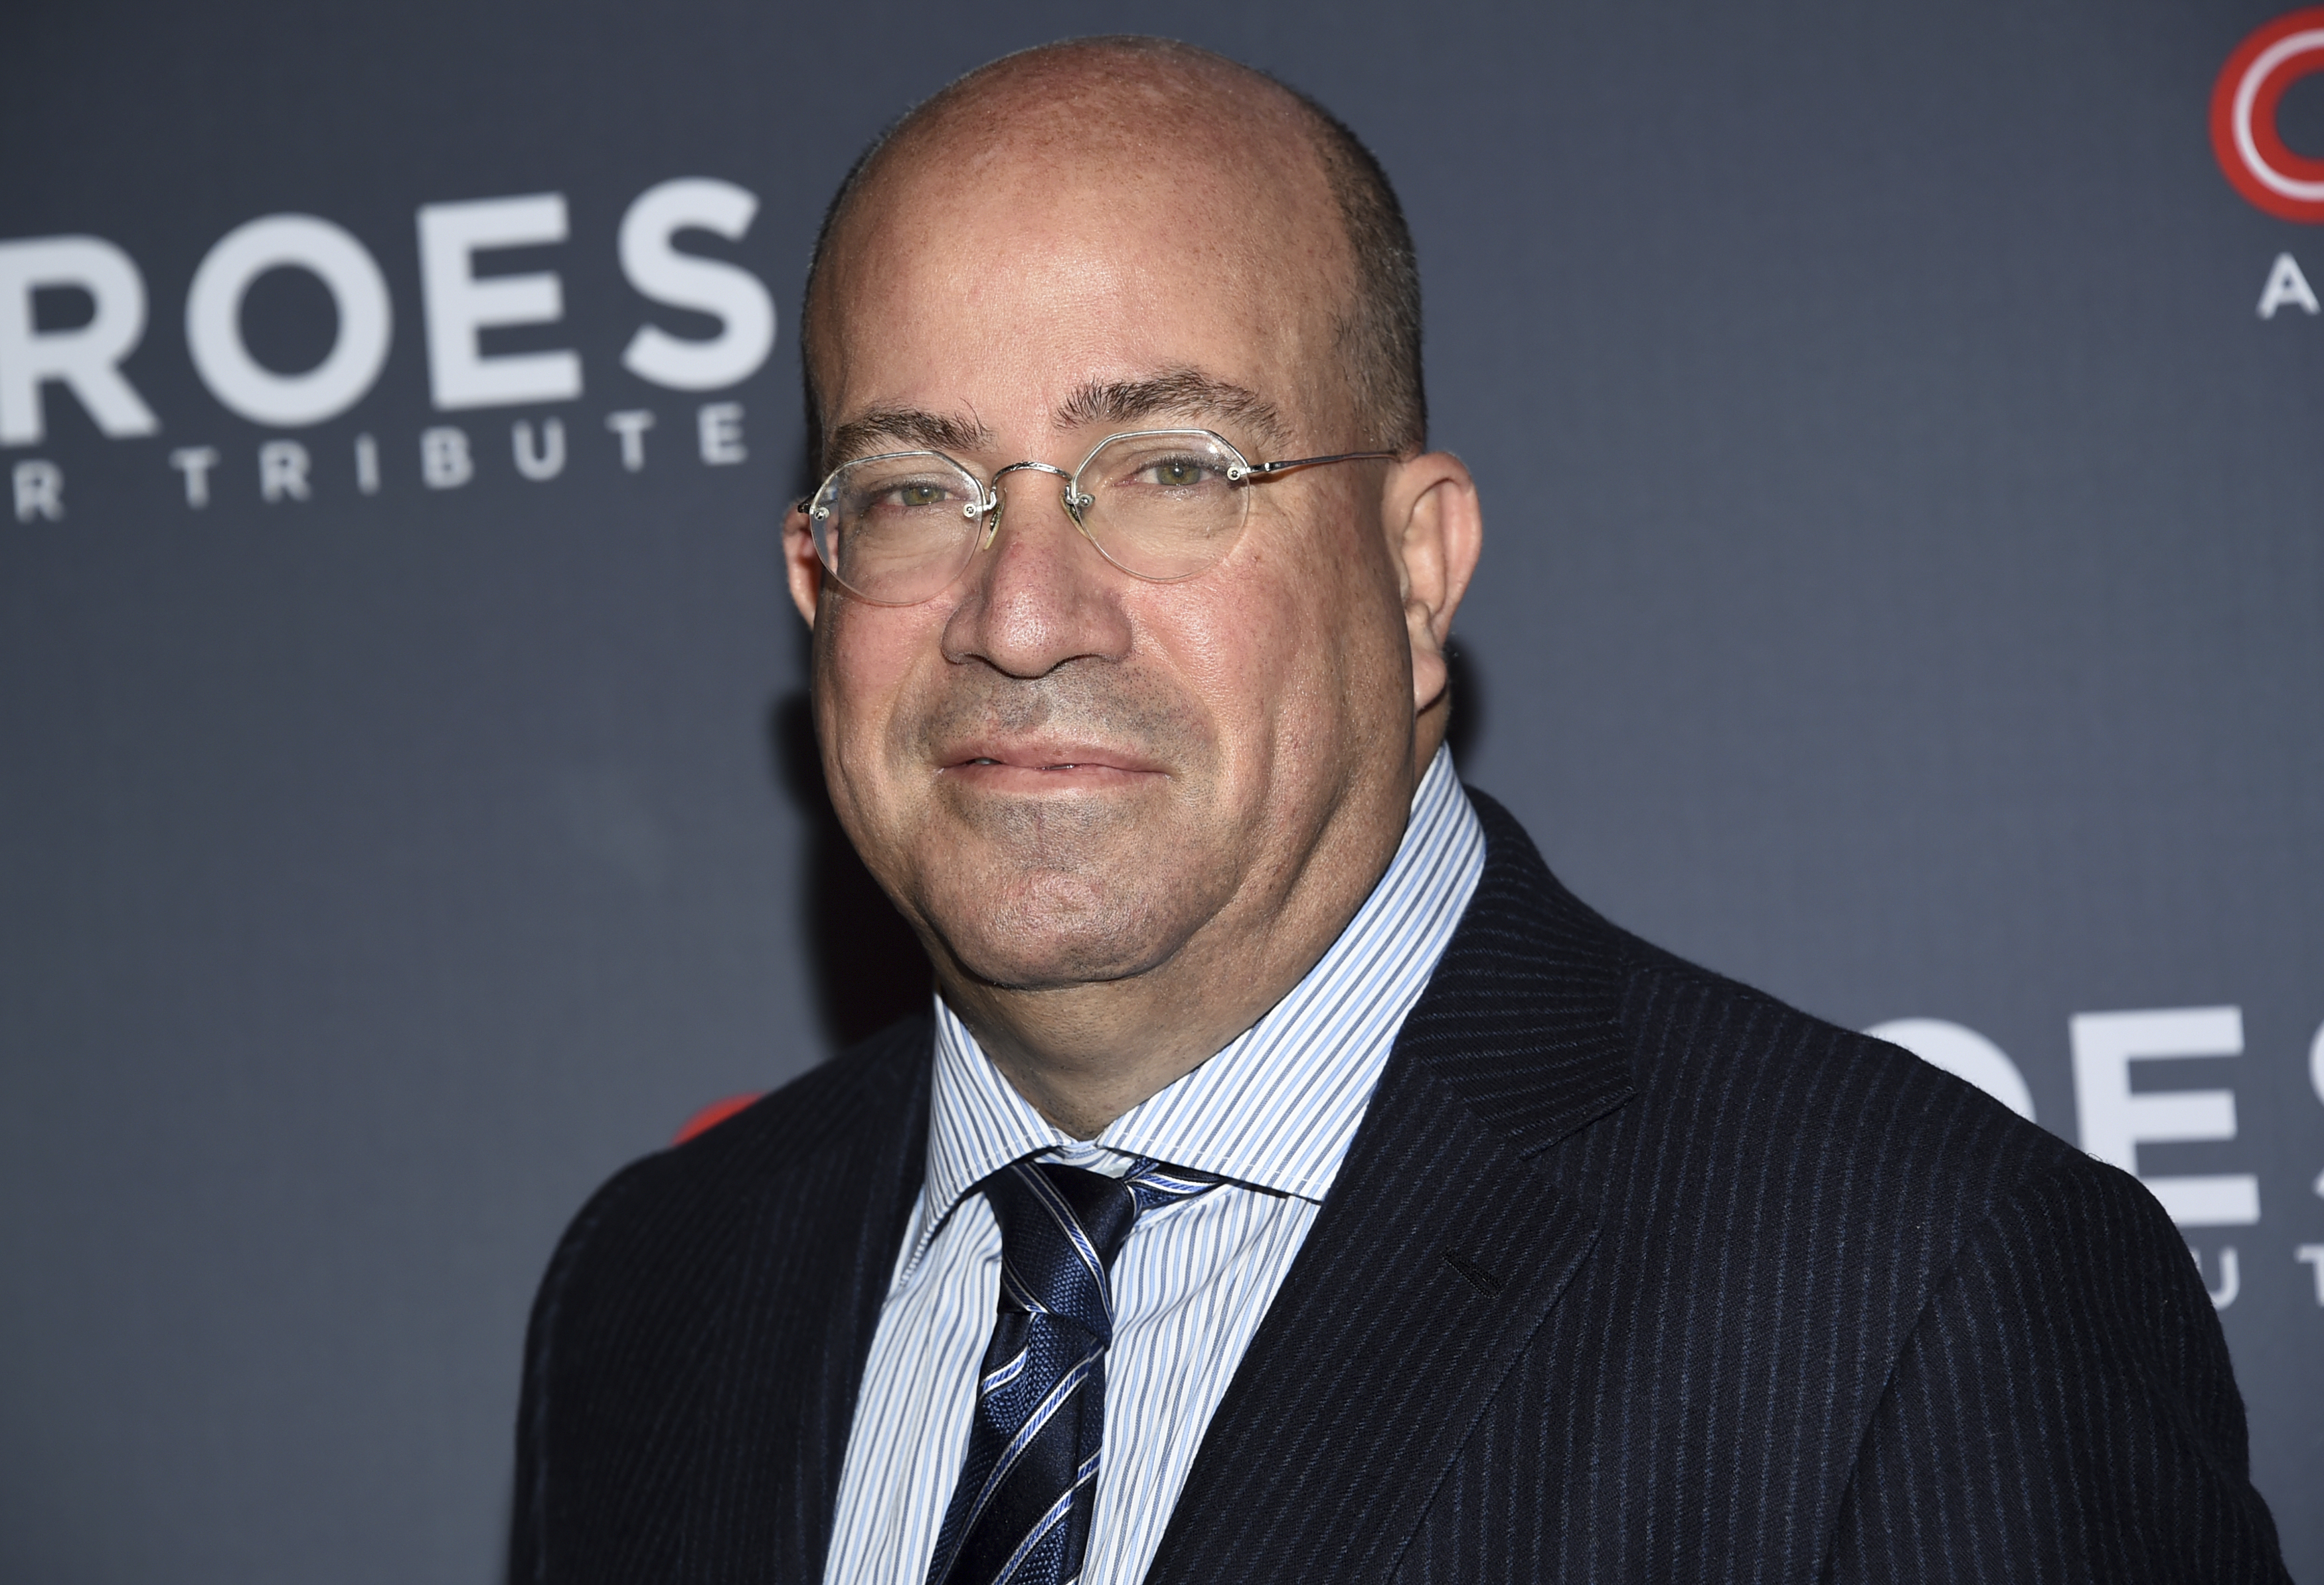 CNN anchor dismisses boss Jeff Zucker's sexually suggestive joke: 'That isn't harassment'